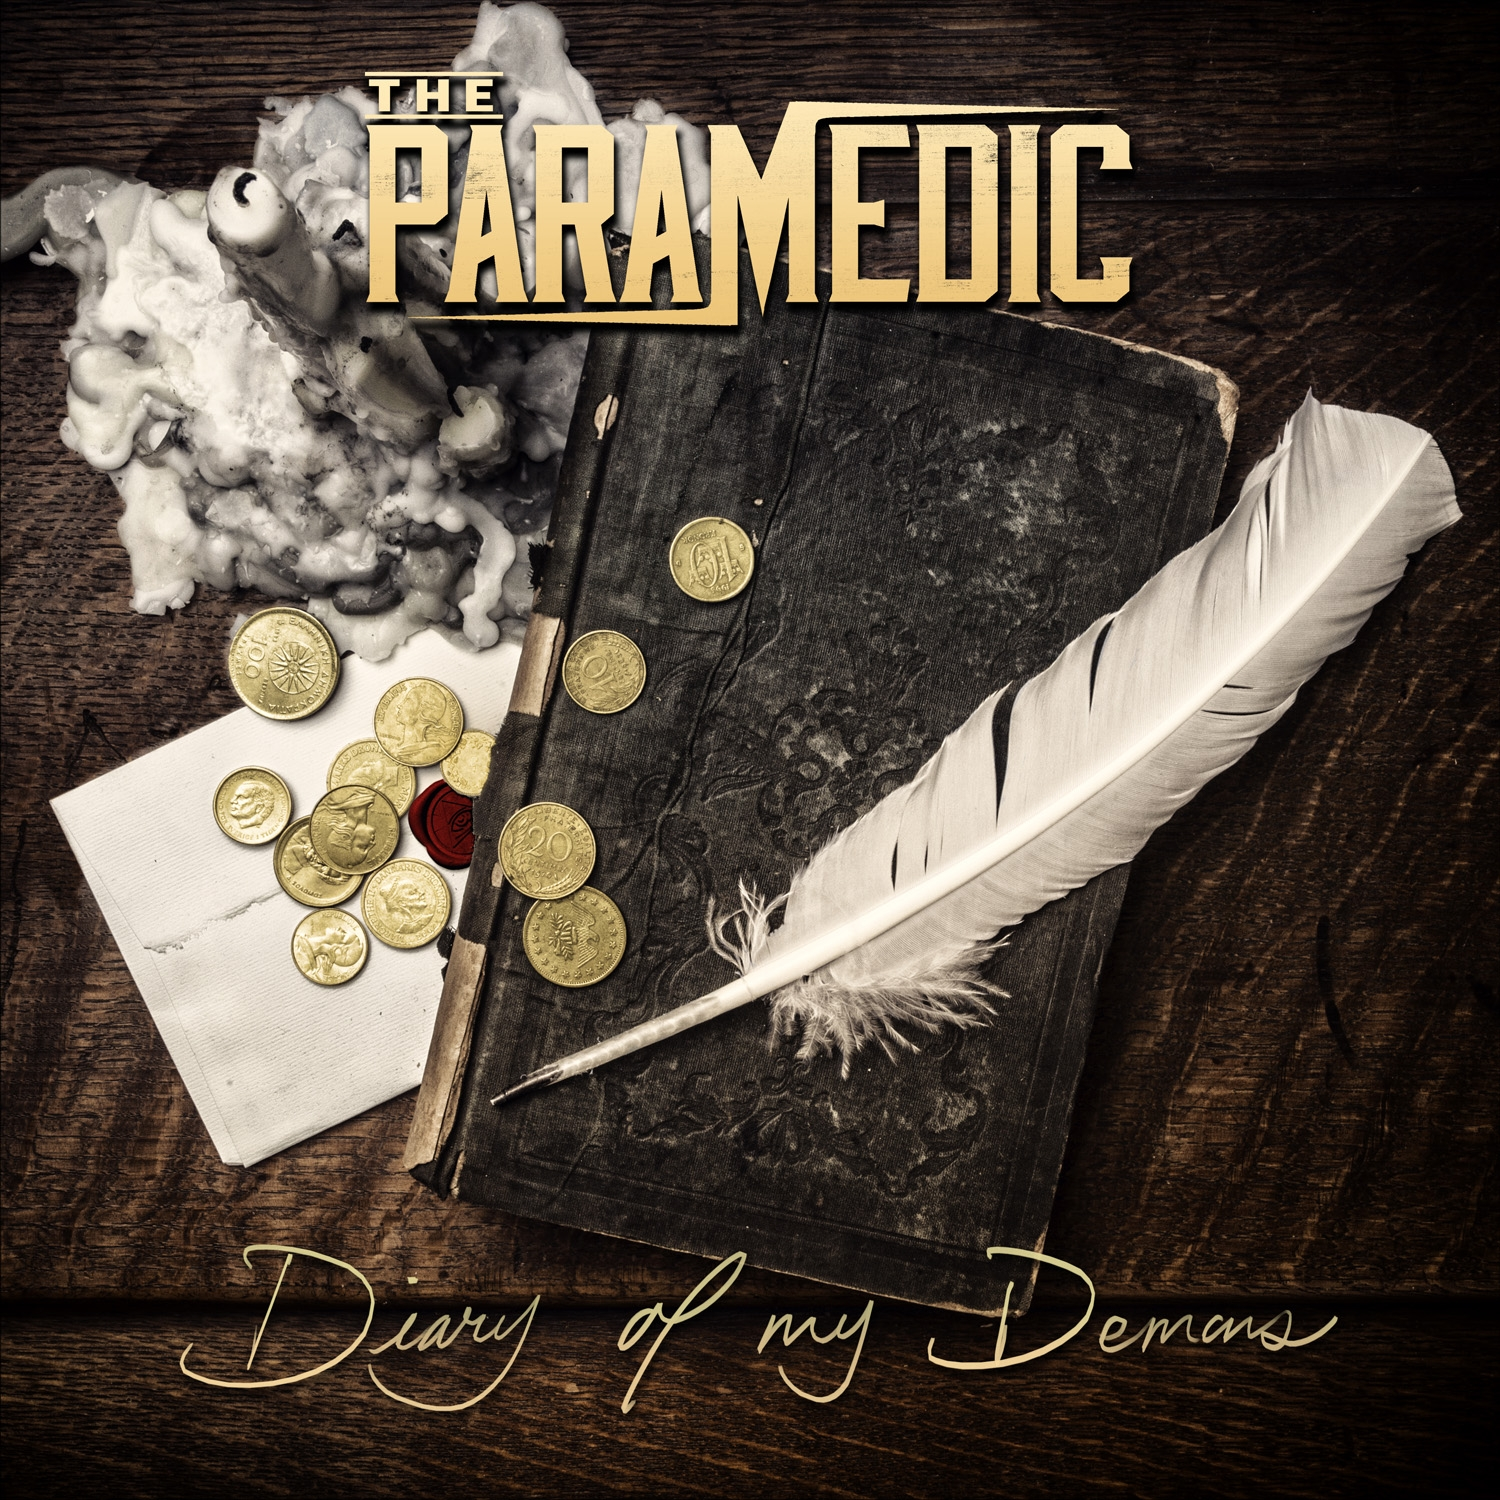 The Paramedic - Diary Of My Demons